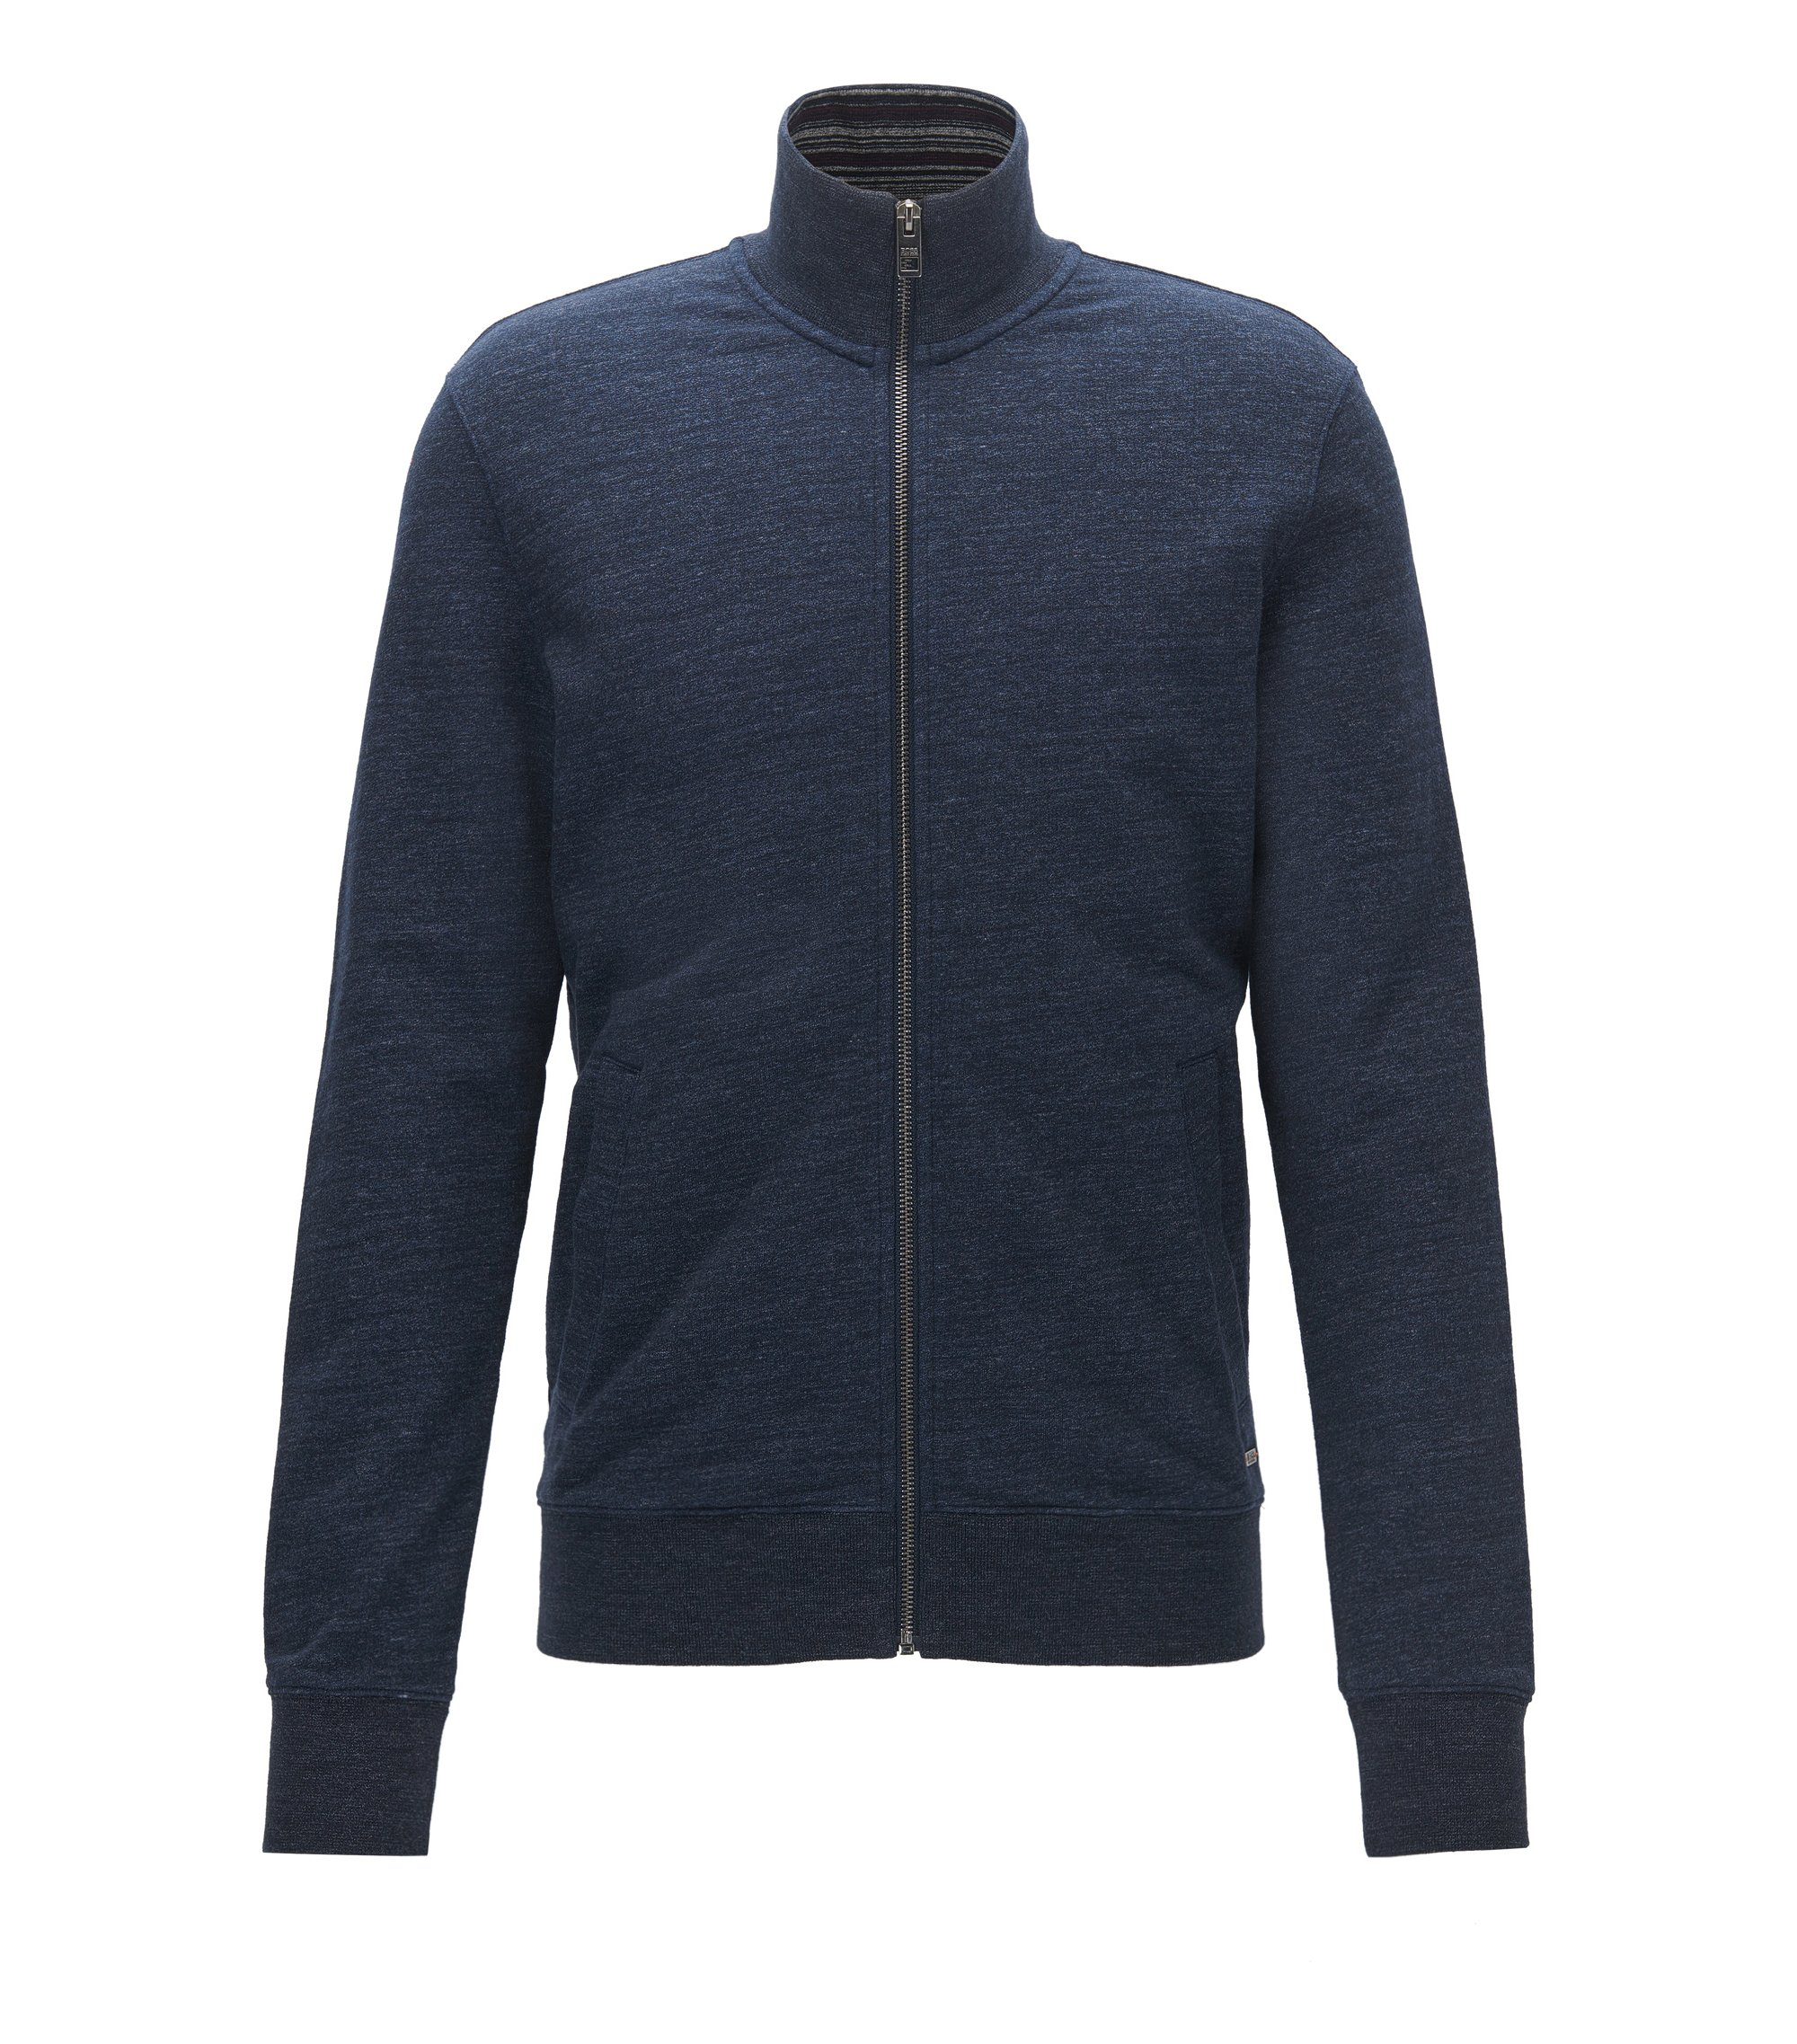 Maglione con zip integrale in french terry mélange, Blu scuro